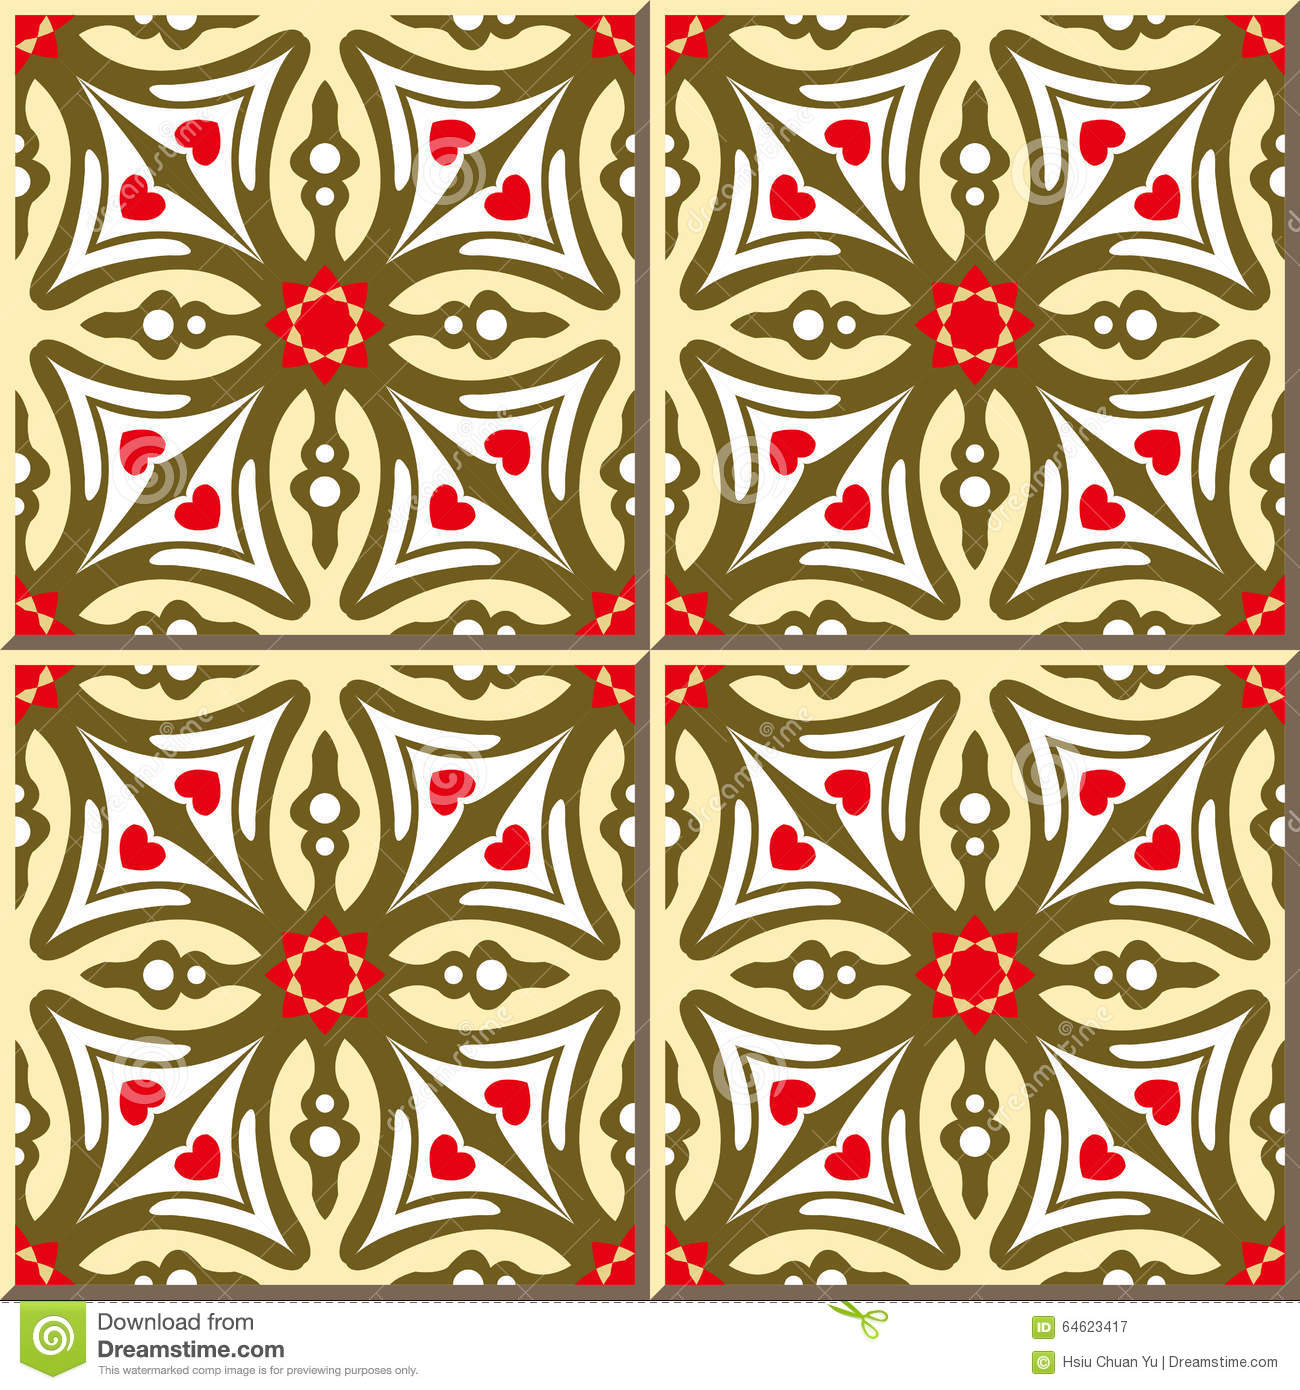 Vintage Seamless Wall Tiles Of Cross Red Star Flower, Moroccan ...